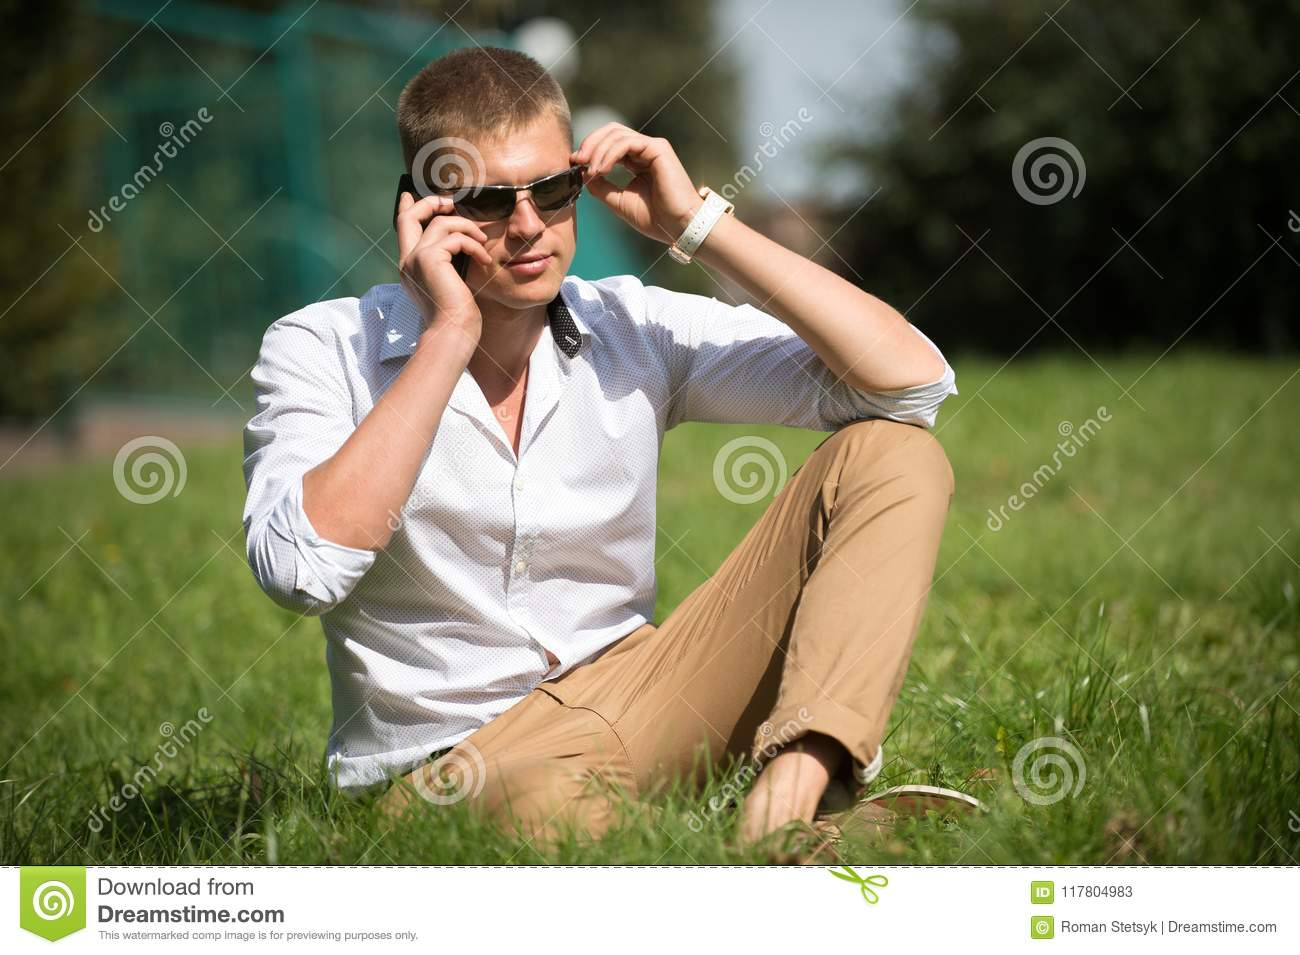 Handsome macho enjoy summer day. Businessman in sunglasses on sunny outdoor. Man relax on green grass. Fashion style and